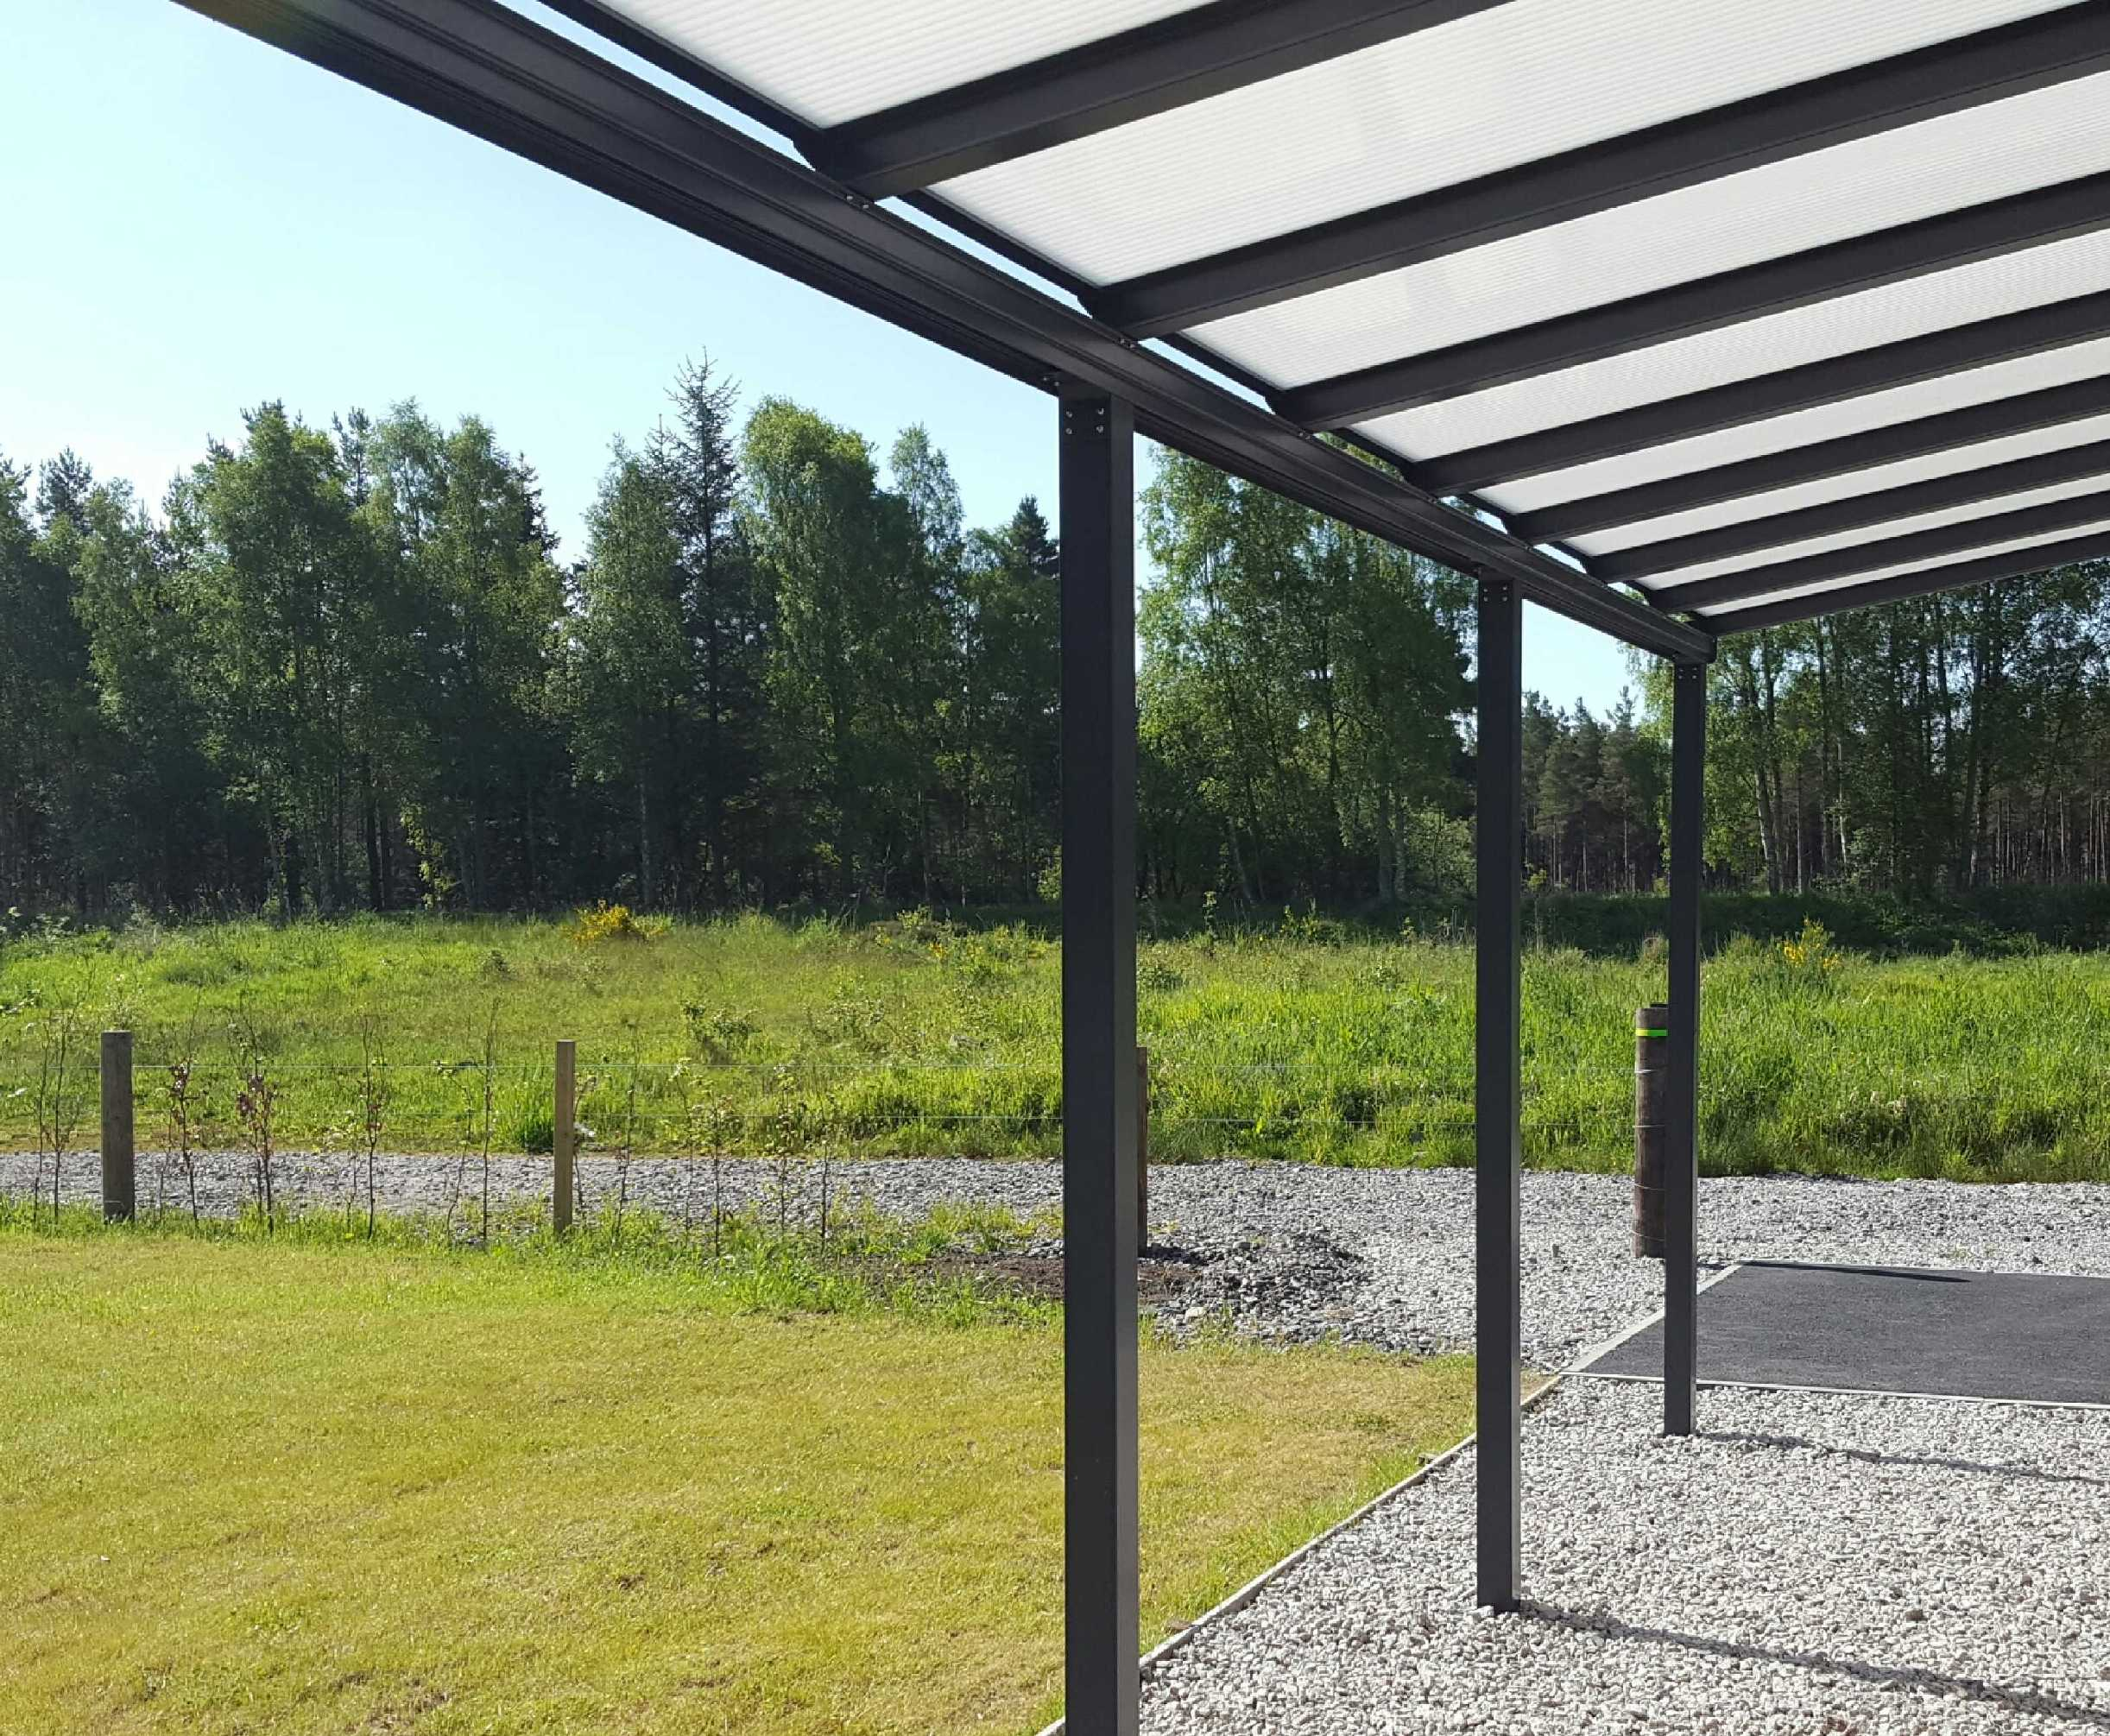 Omega Smart Lean-To Canopy, Anthracite Grey, 16mm Polycarbonate Glazing - 8.4m (W) x 2.5m (P), (4) Supporting Posts